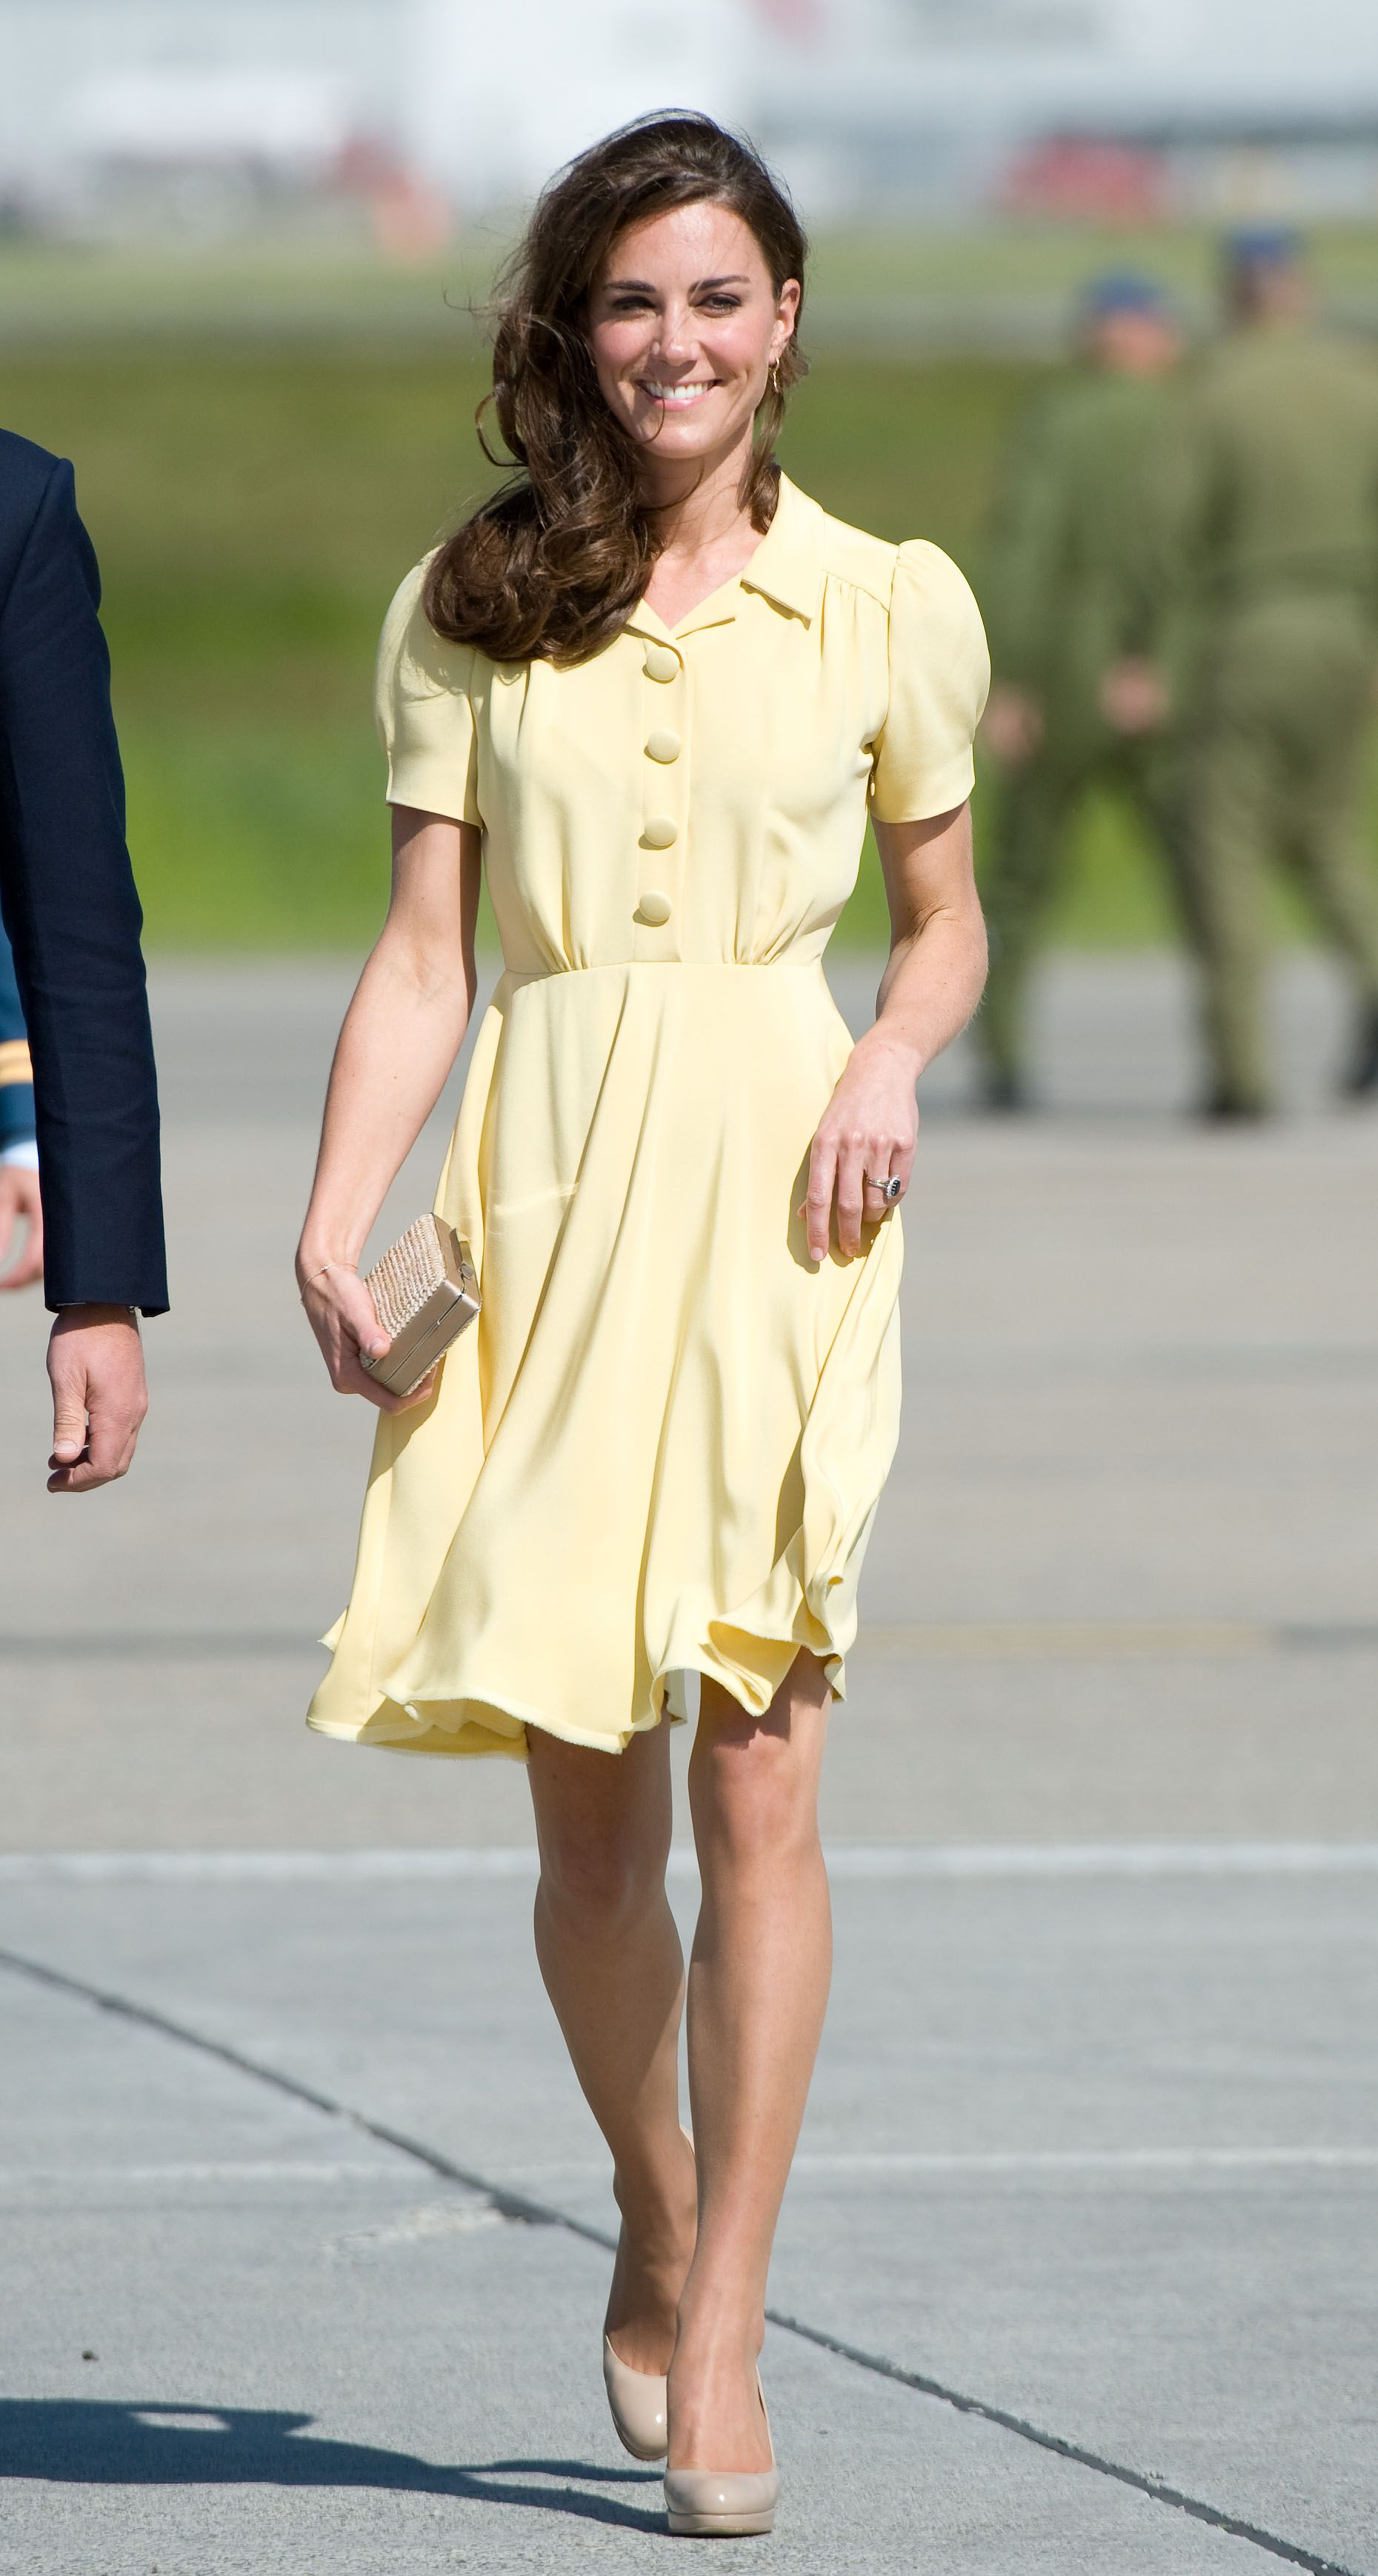 Catherine Middleton at Calgary Airport on day 8 of the Royal couple's tour of North America on July 7, 2011 in Calgary, Canada.   Source: Getty Images